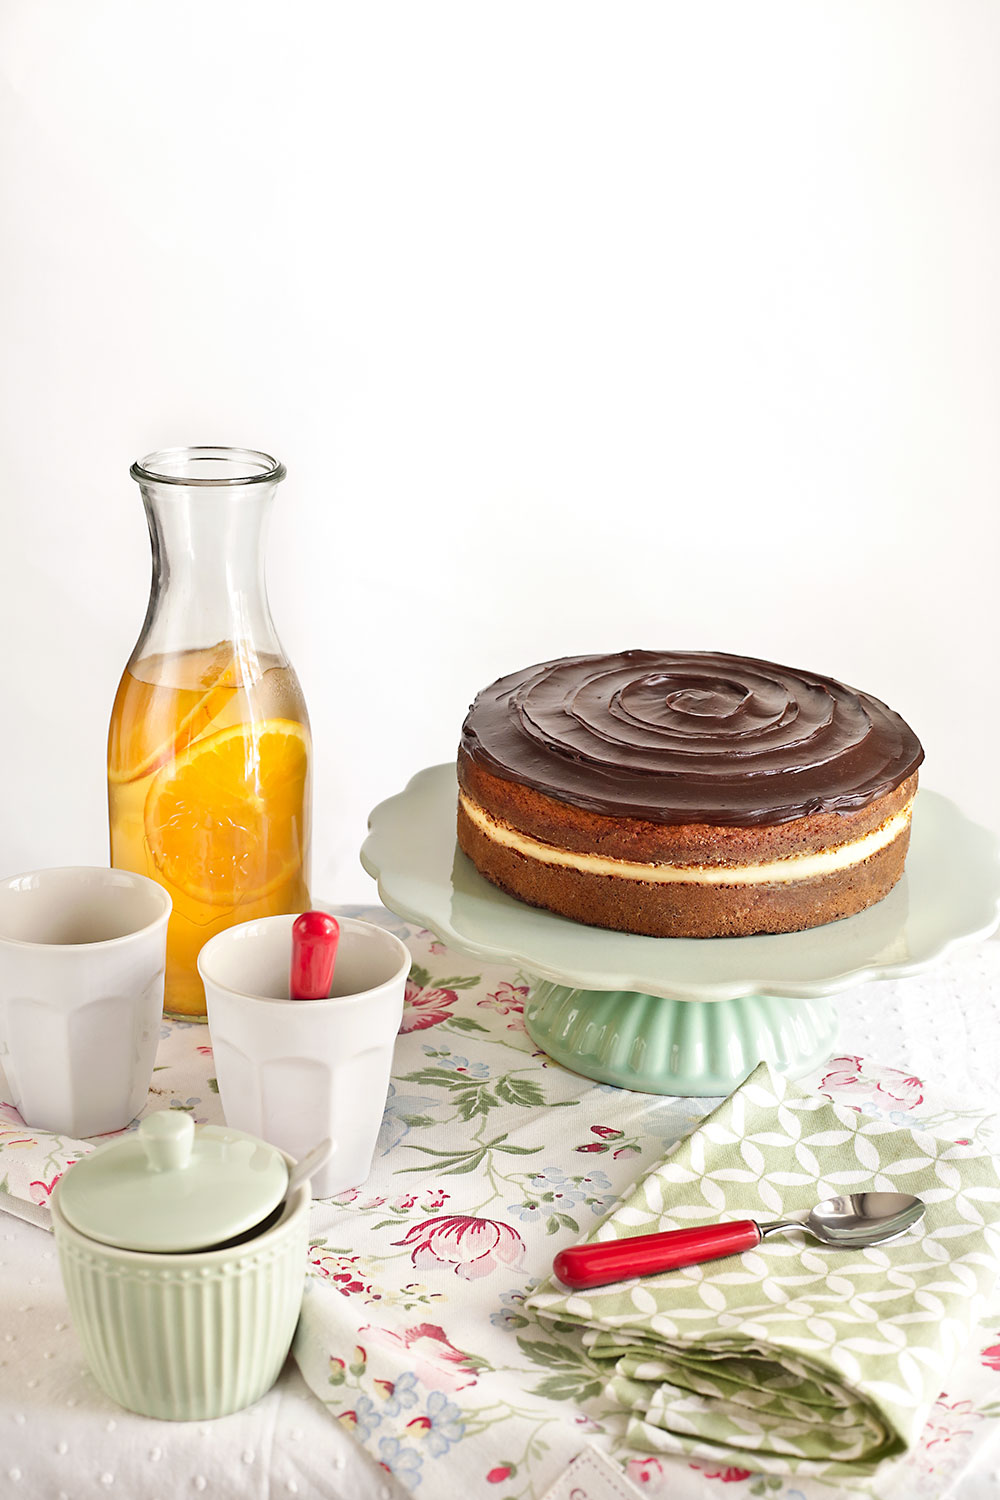 Receta de Boston cream pie 1